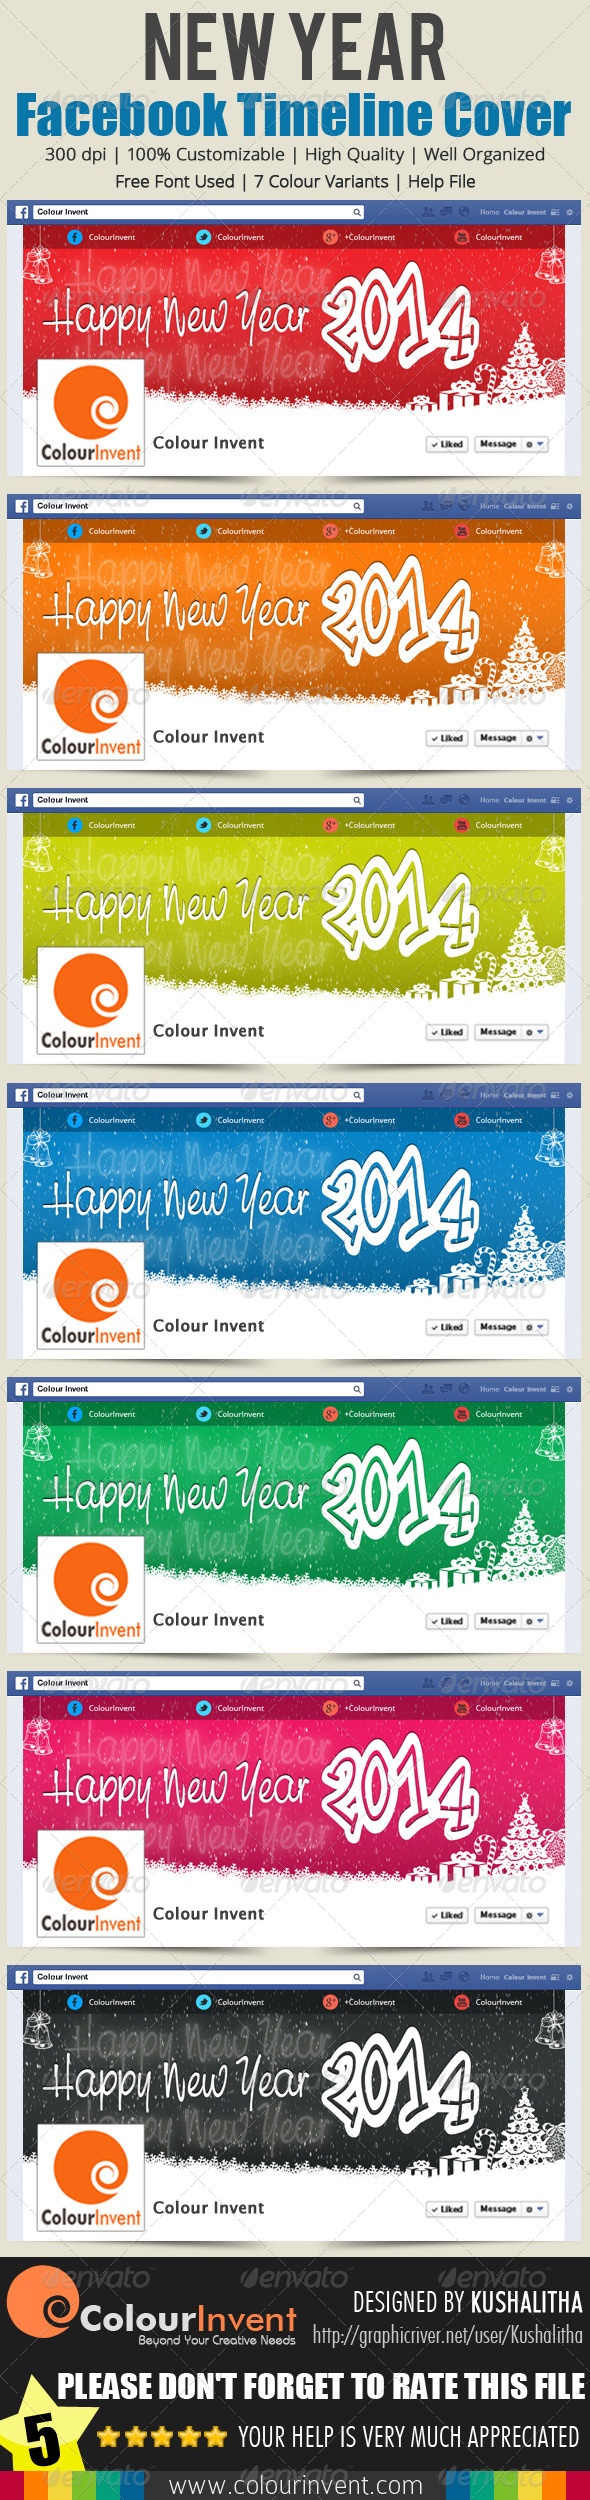 GraphicRiver New Year Facebook Cover 6456609